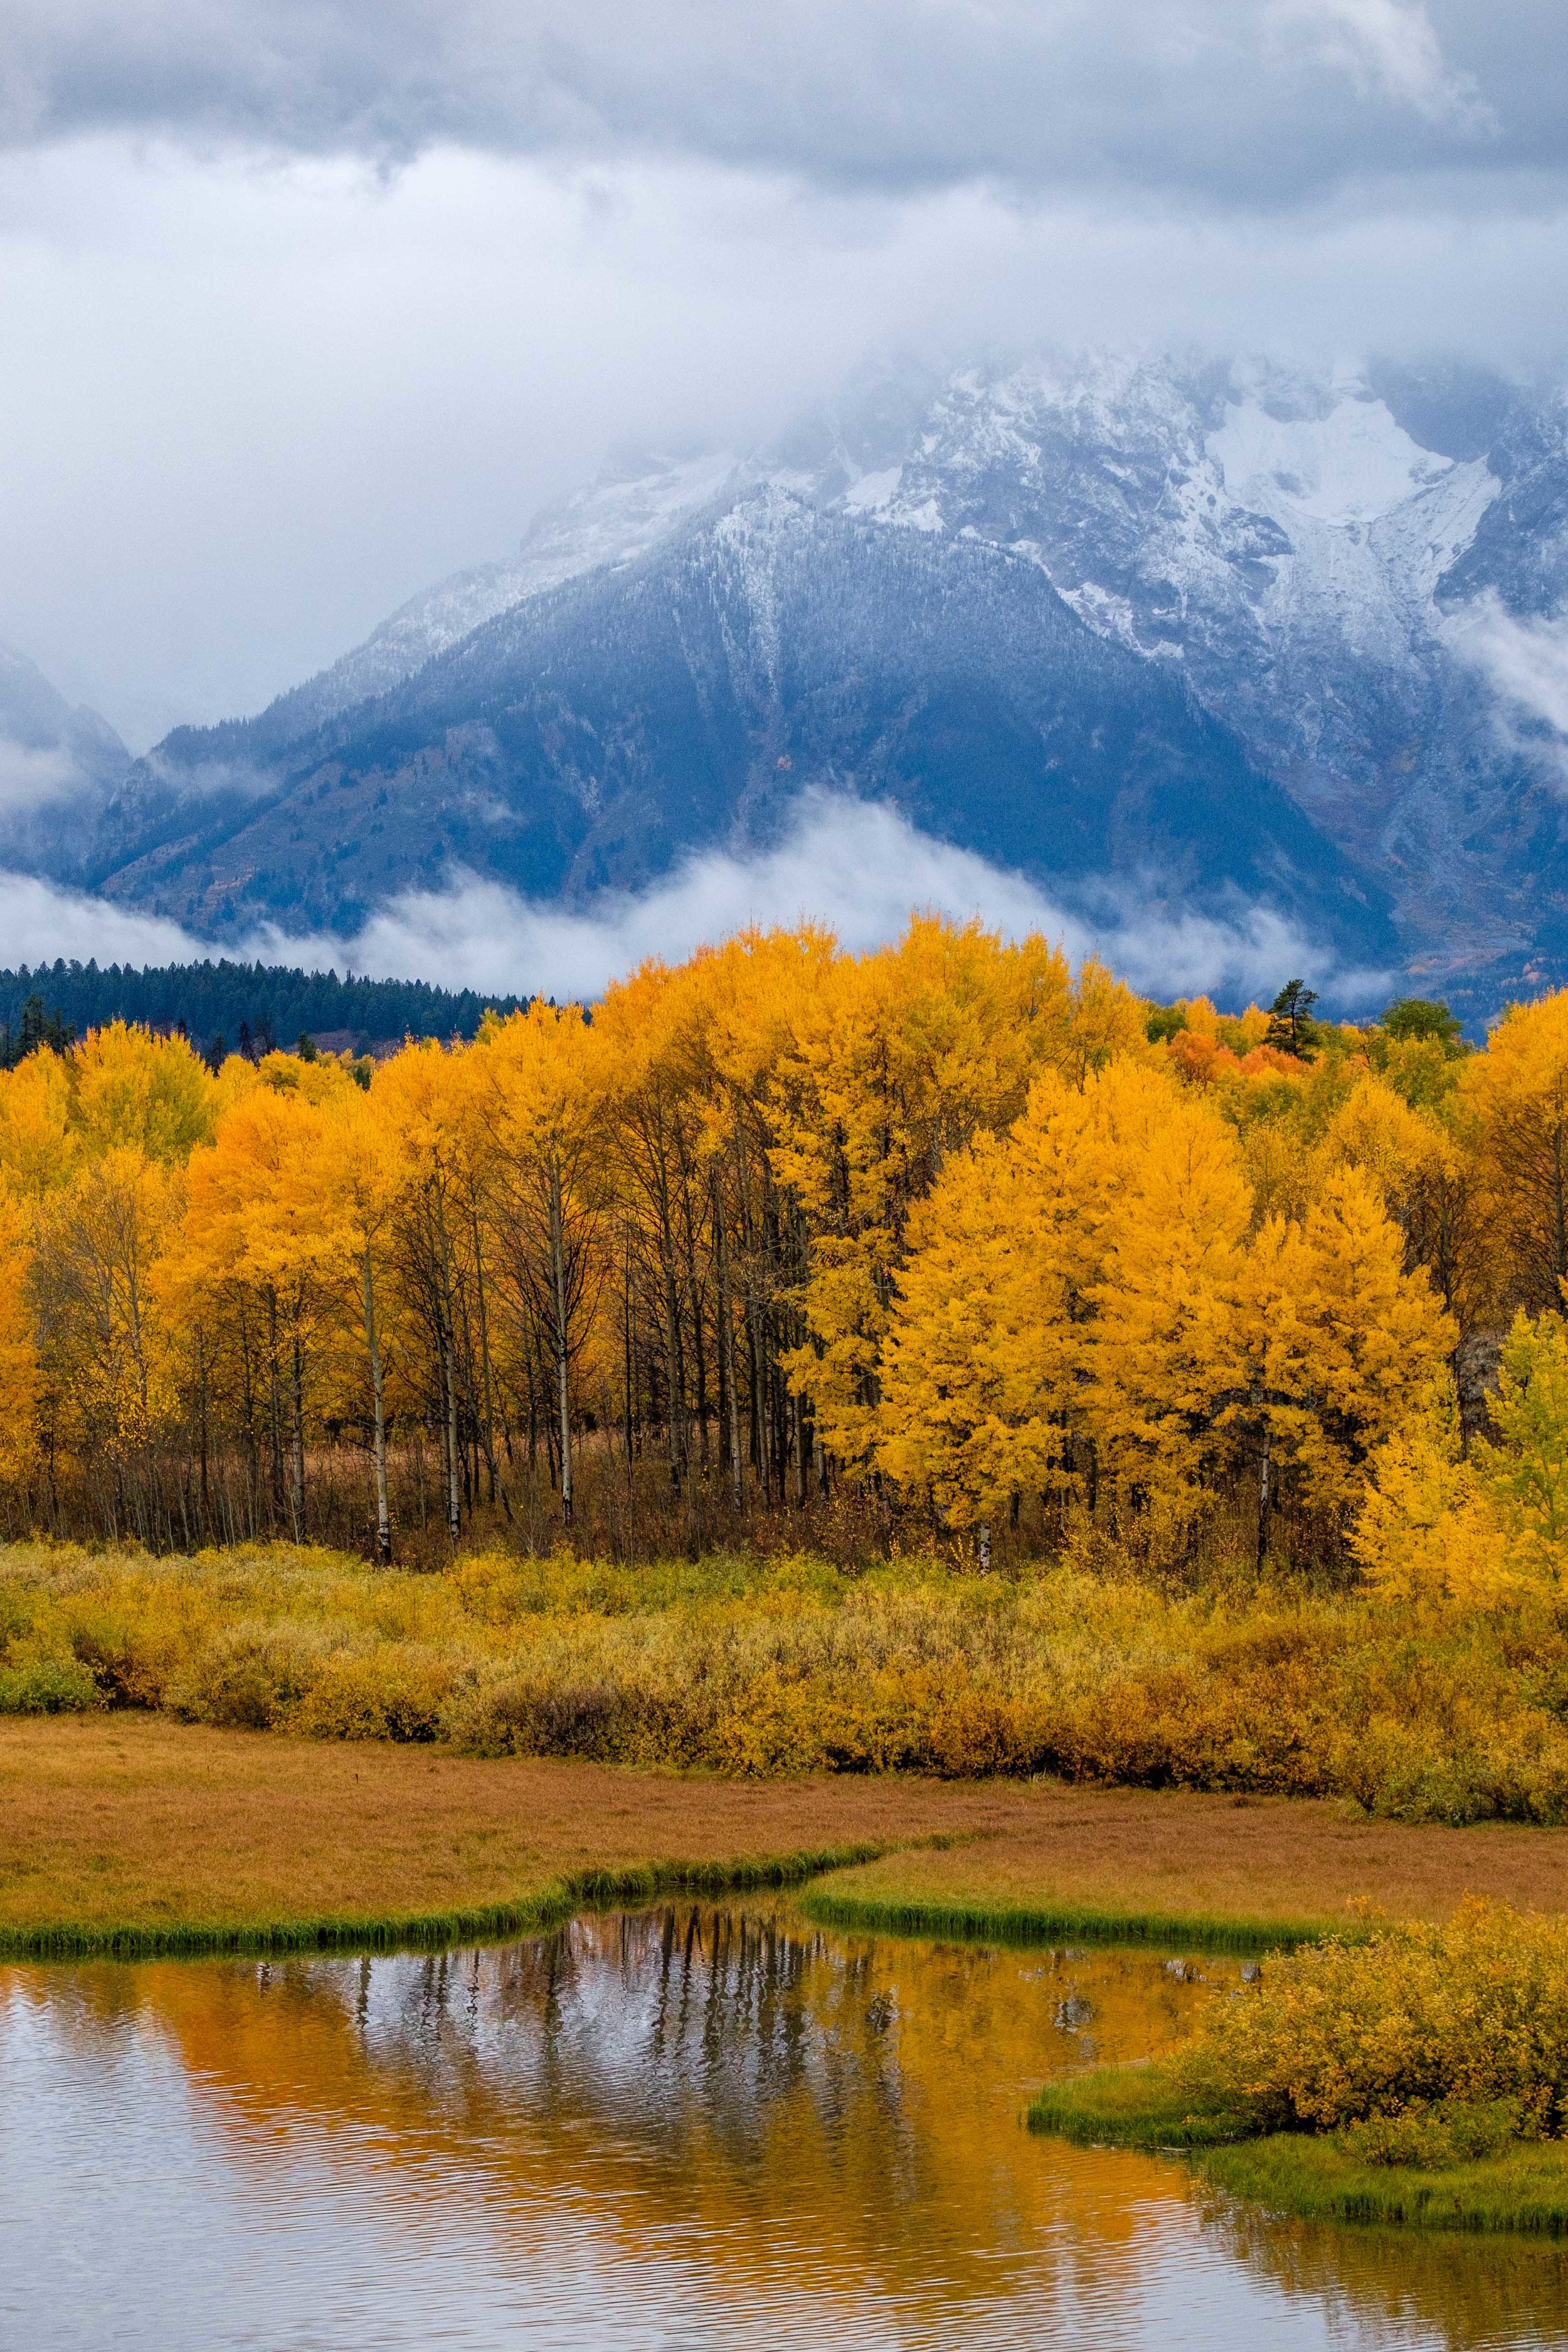 It seems we could see beautiful fall color scenes in every direction.